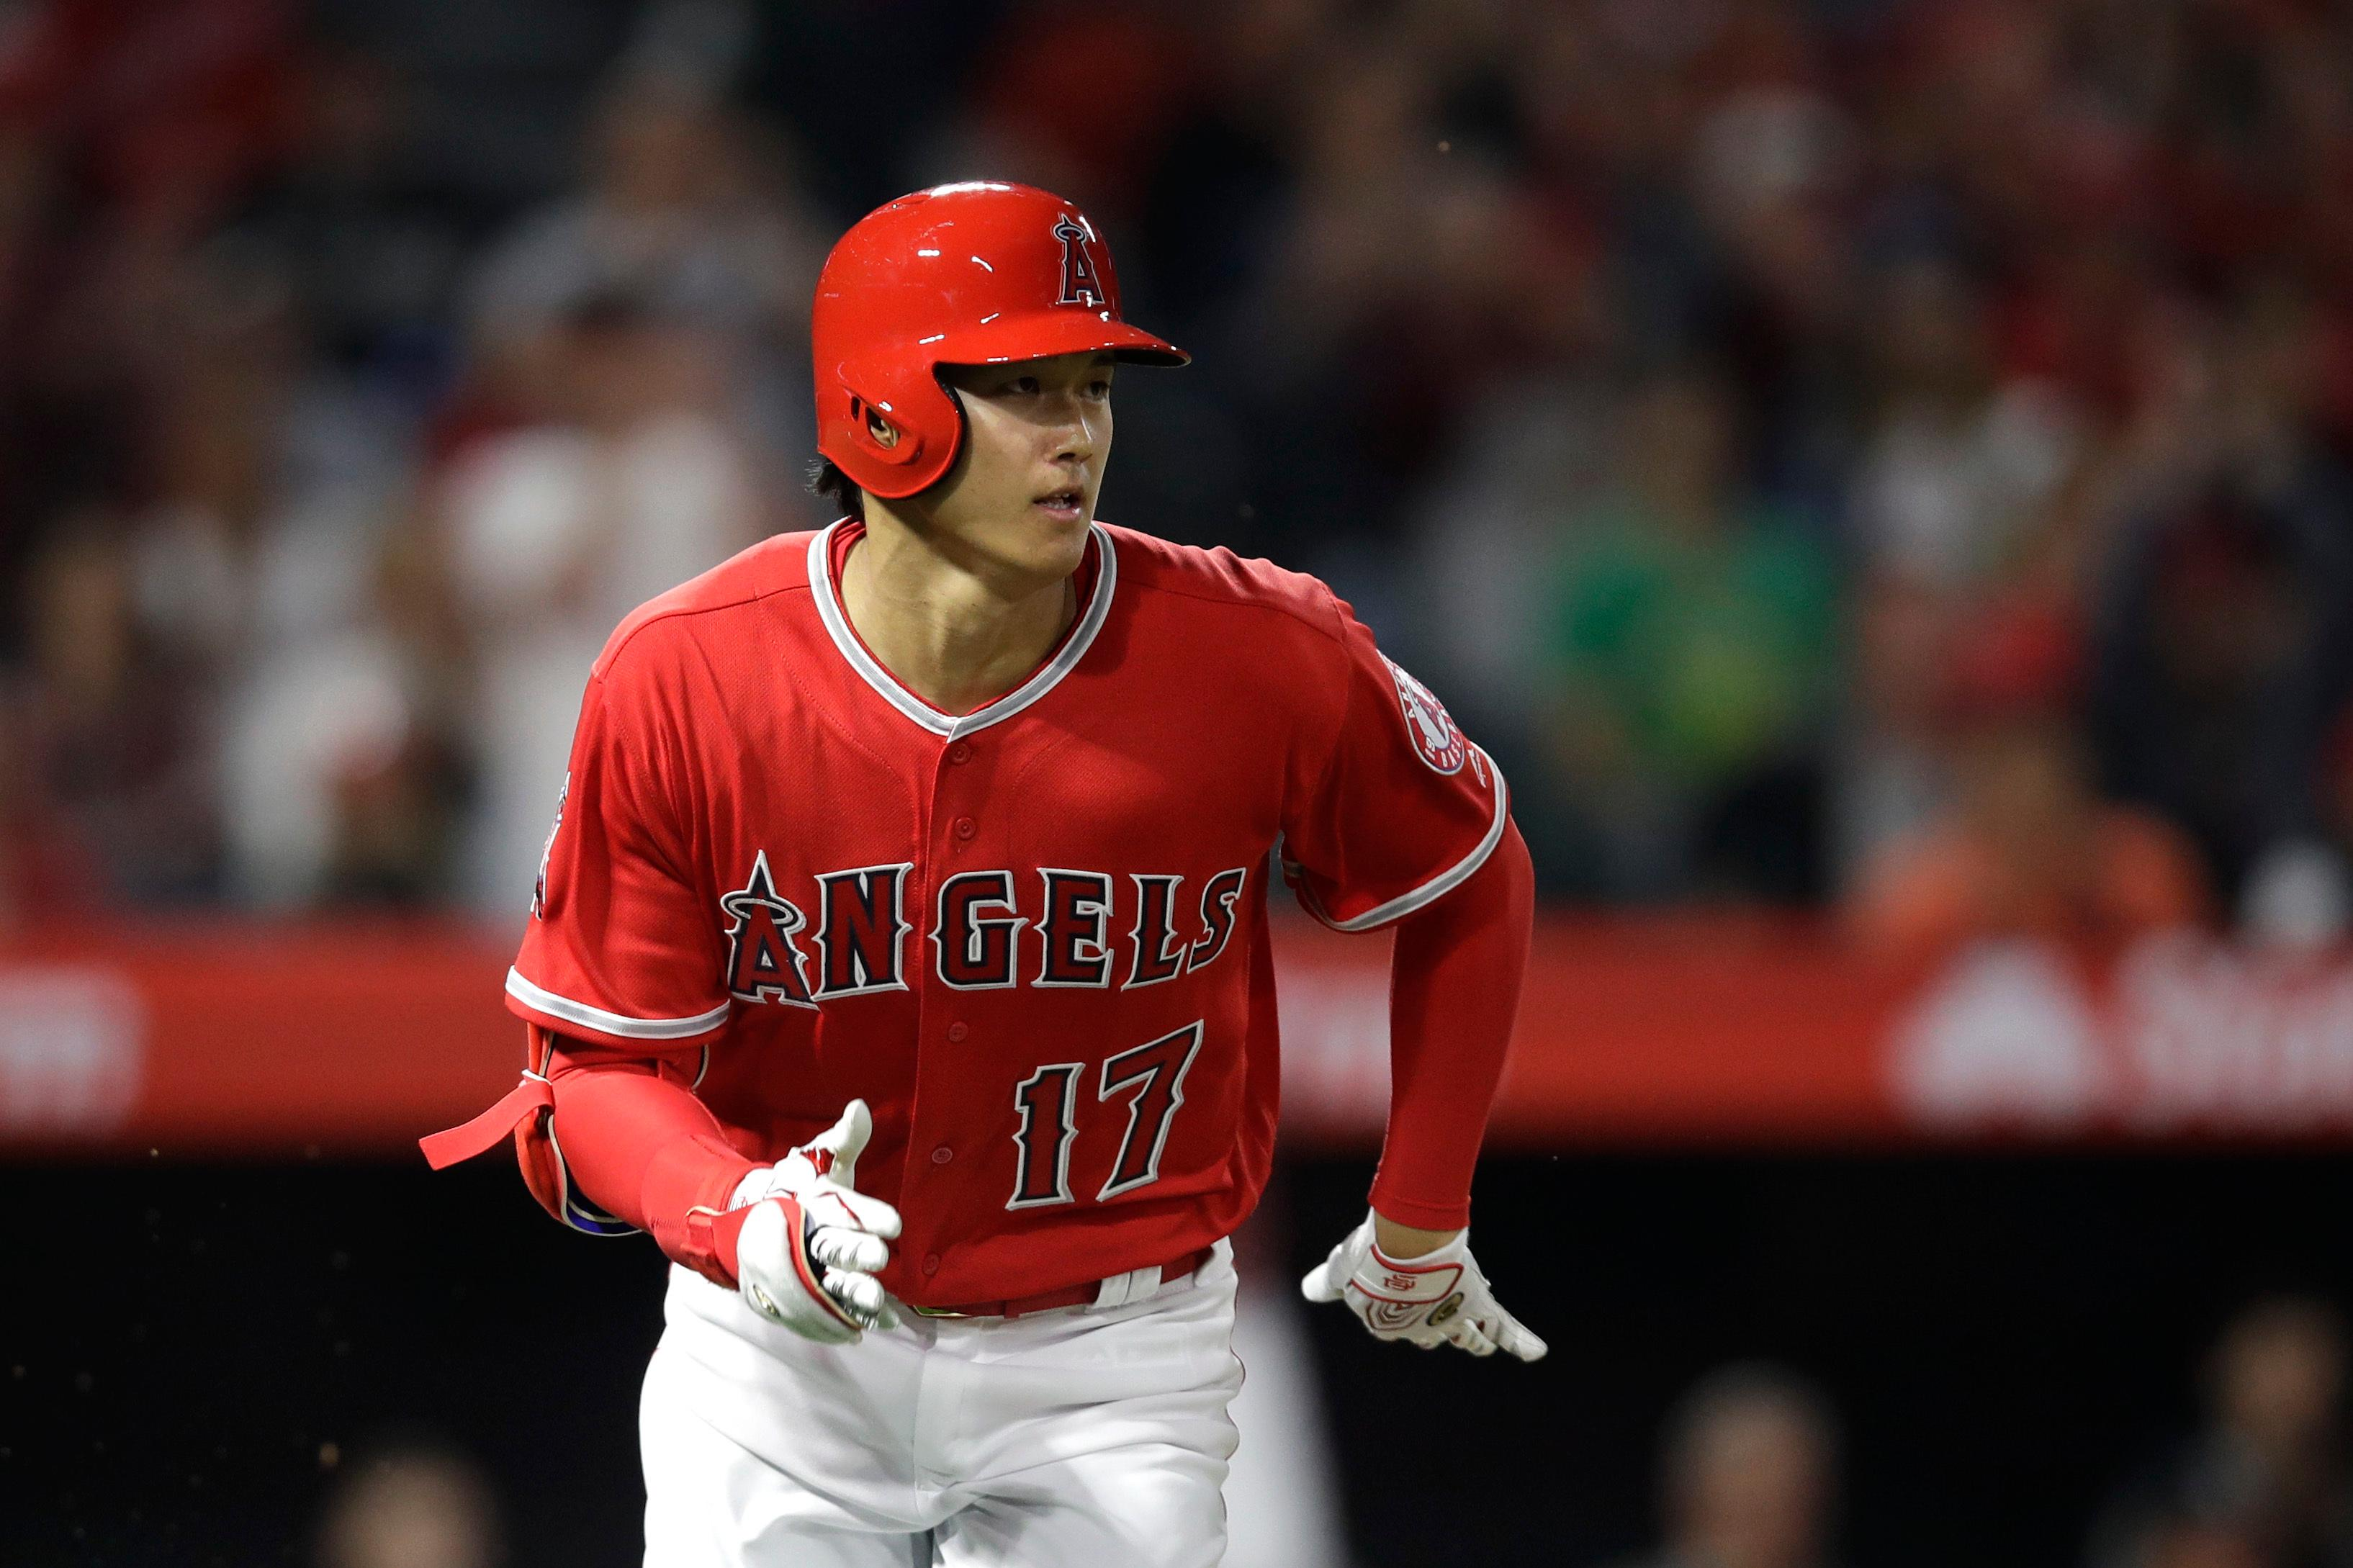 Los Angeles Angels starting pitcher Shohei Ohtani, of Japan, runs to first base after hitting a single during the third inning of a baseball game against the Cleveland Indians, Tuesday, April 3, 2018, in Anaheim, Calif. (AP Photo/Jae C. Hong)